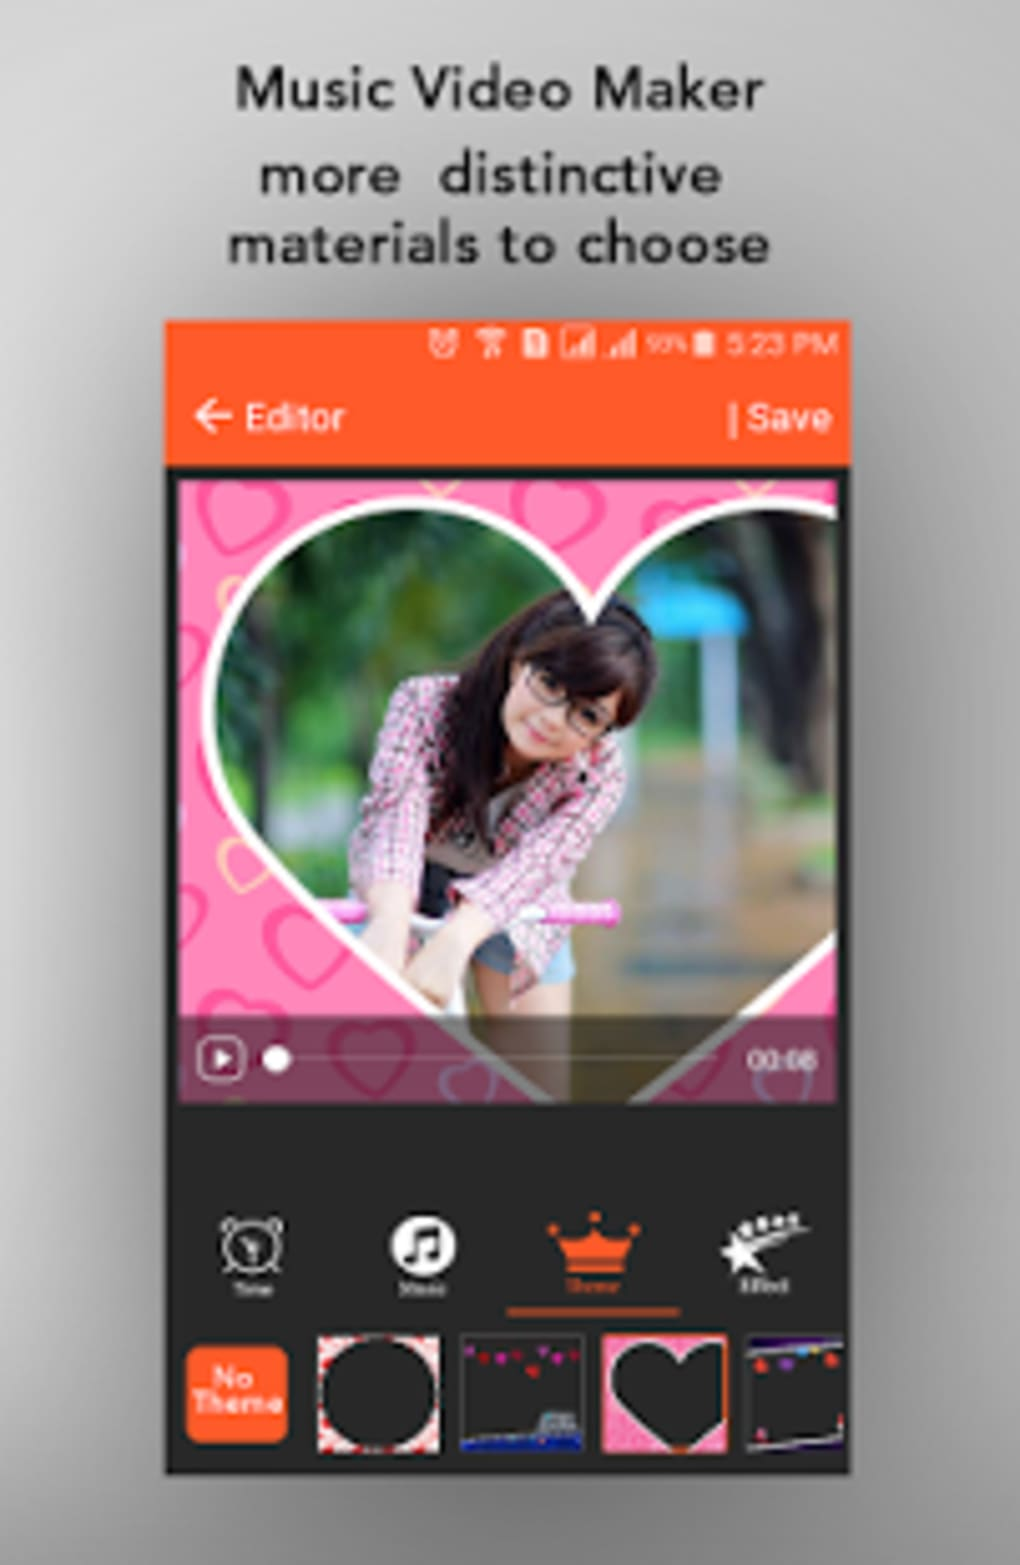 photo video maker with music app download uptodown